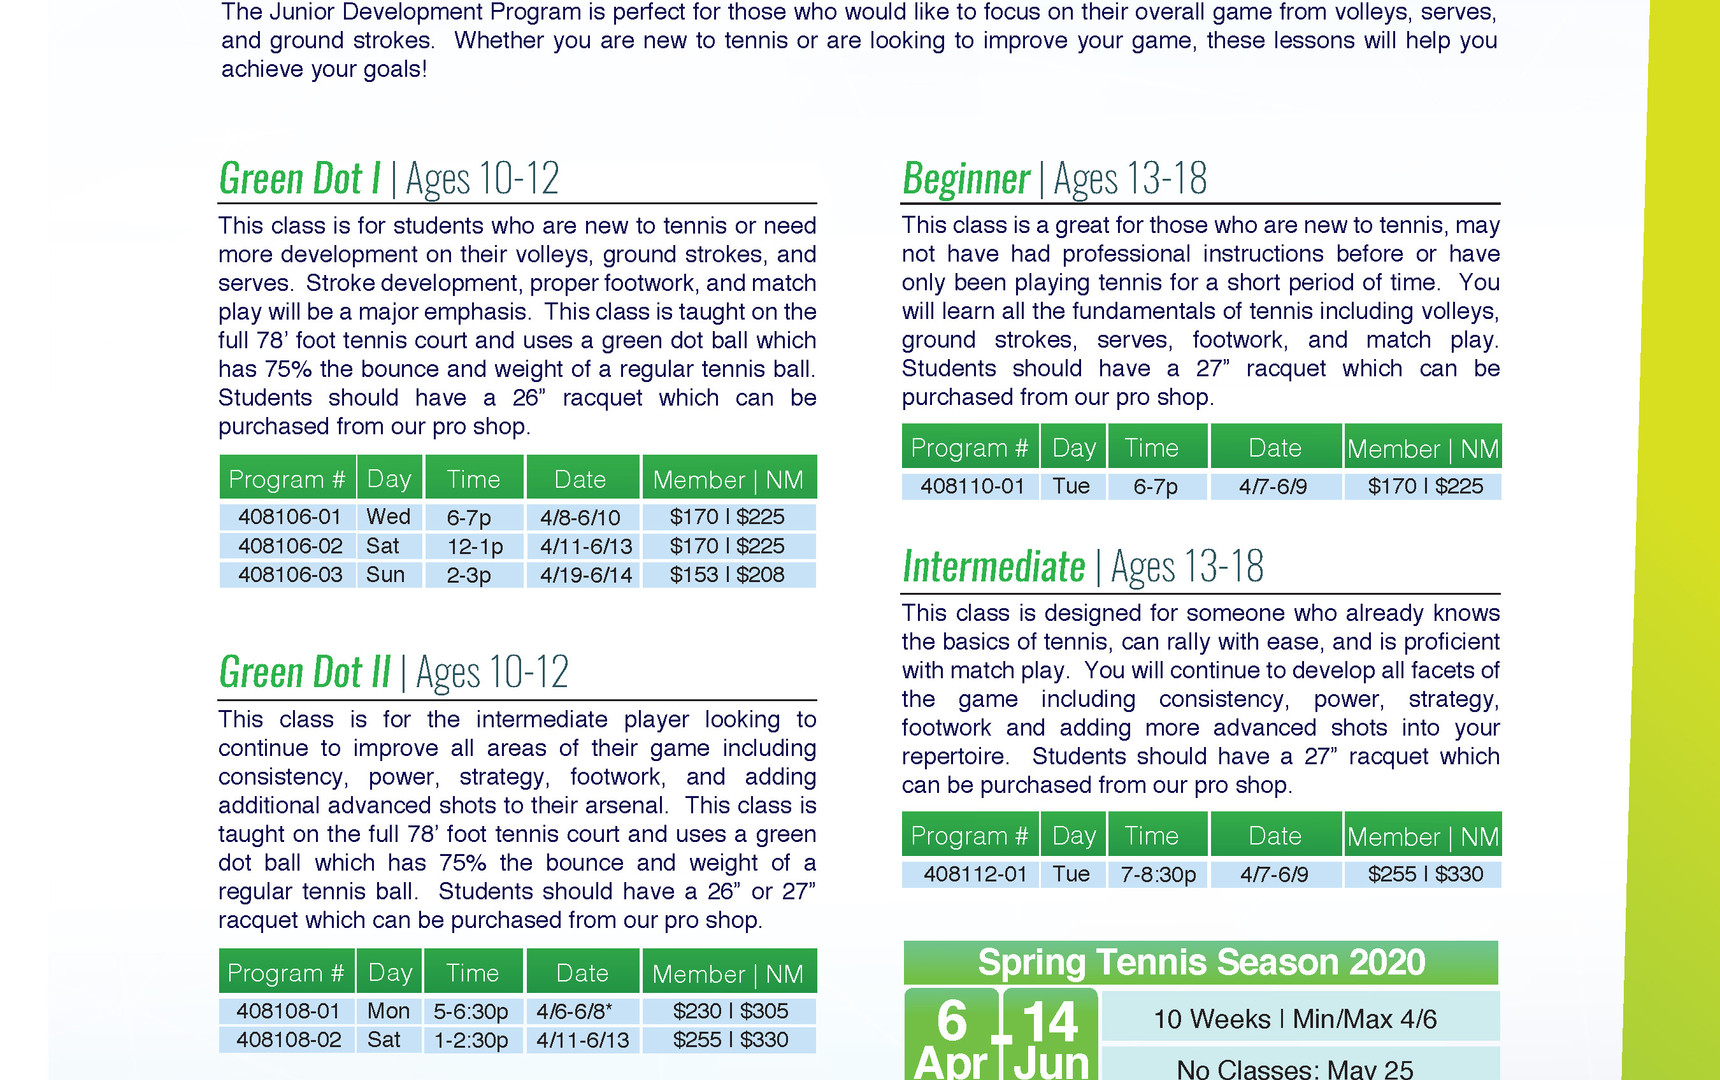 Spring Playbook 2020 Final Draft_Page_37